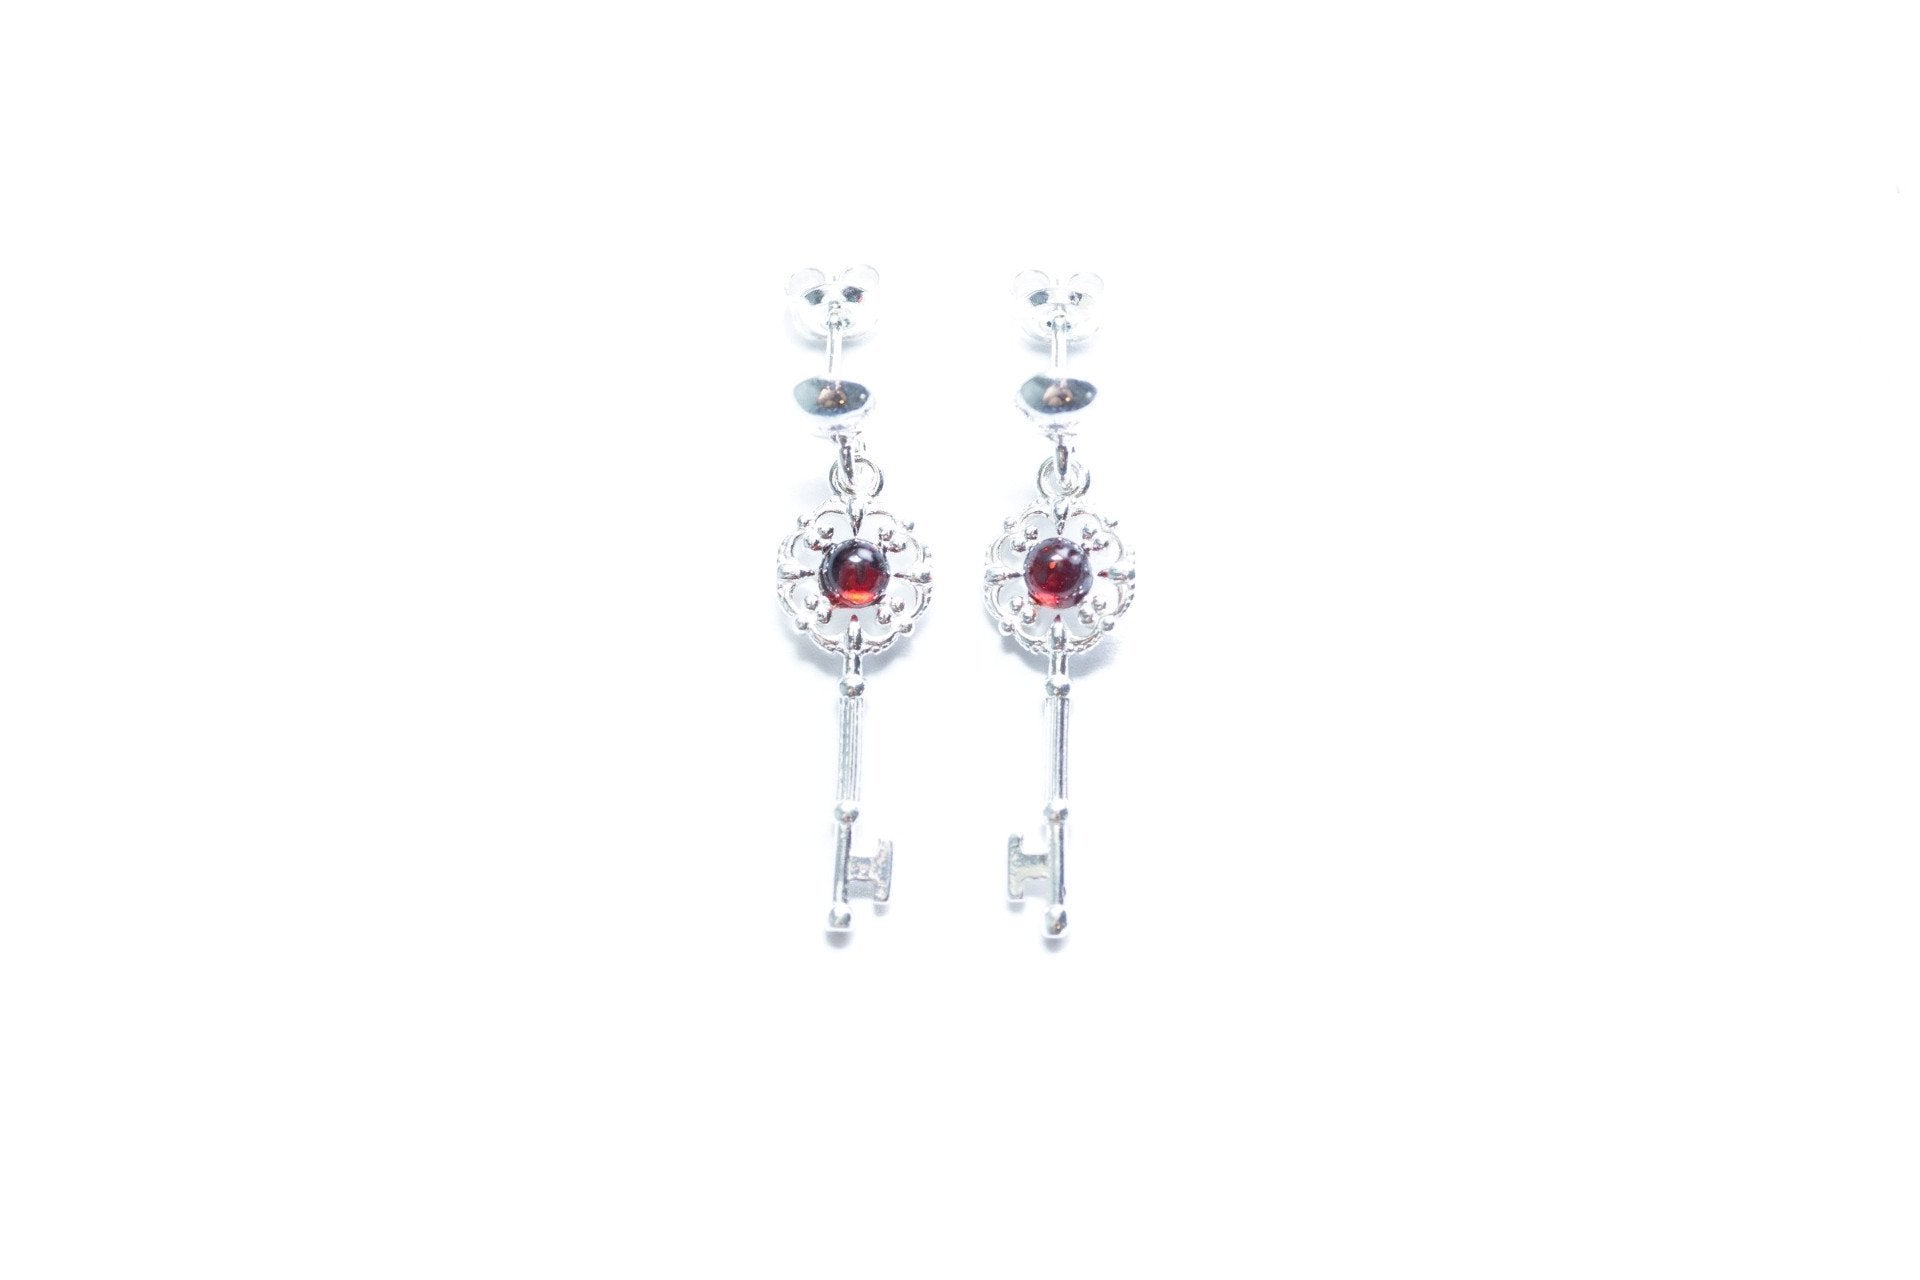 shop beauty products earrings accessories paparazzi post white ballroom